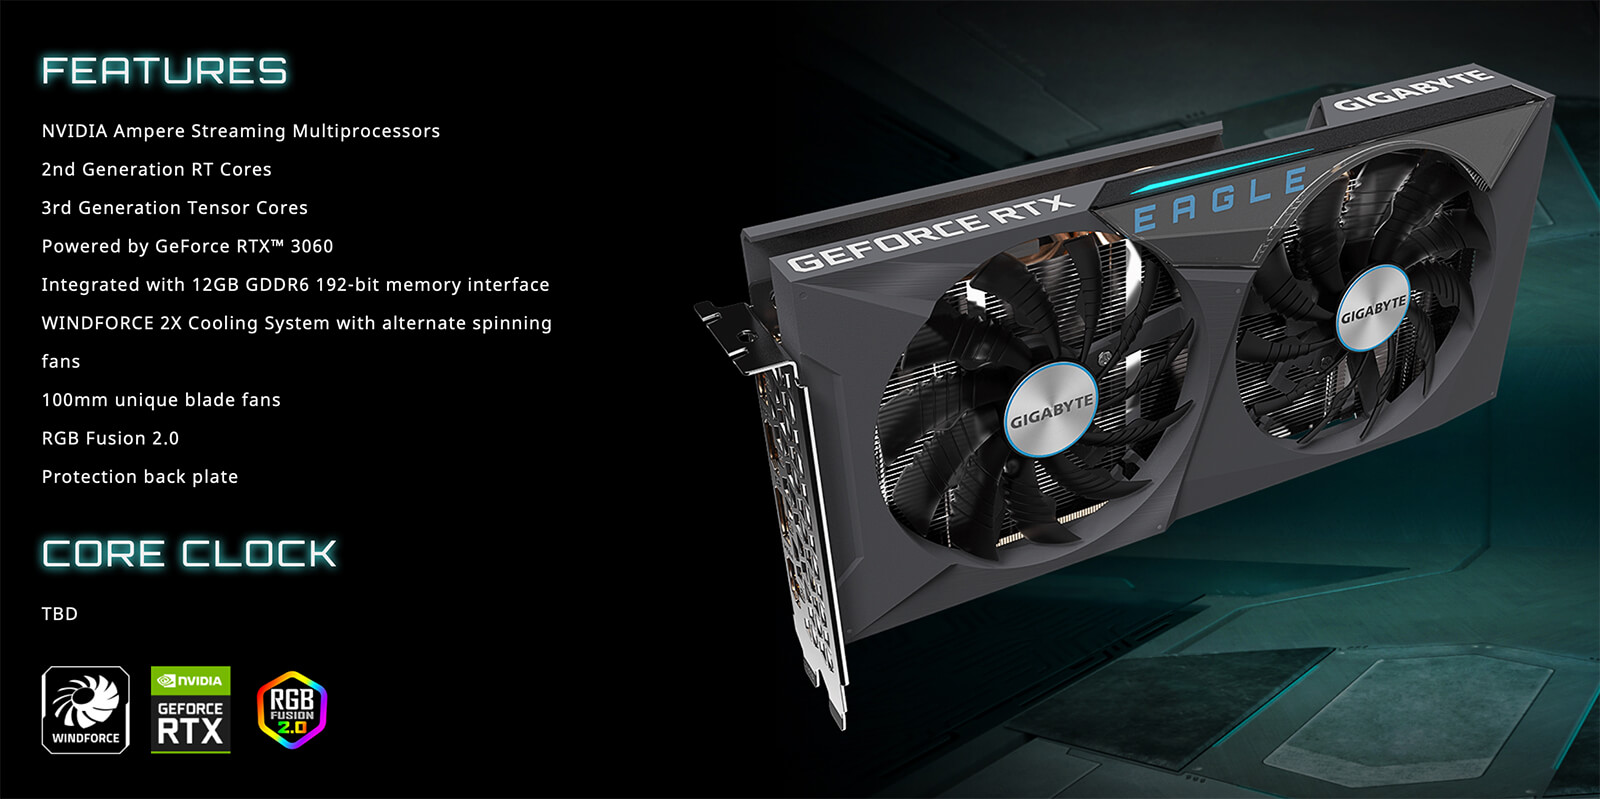 Gigabyte Geforce Rtx™ 3060 Eagle 12g Features